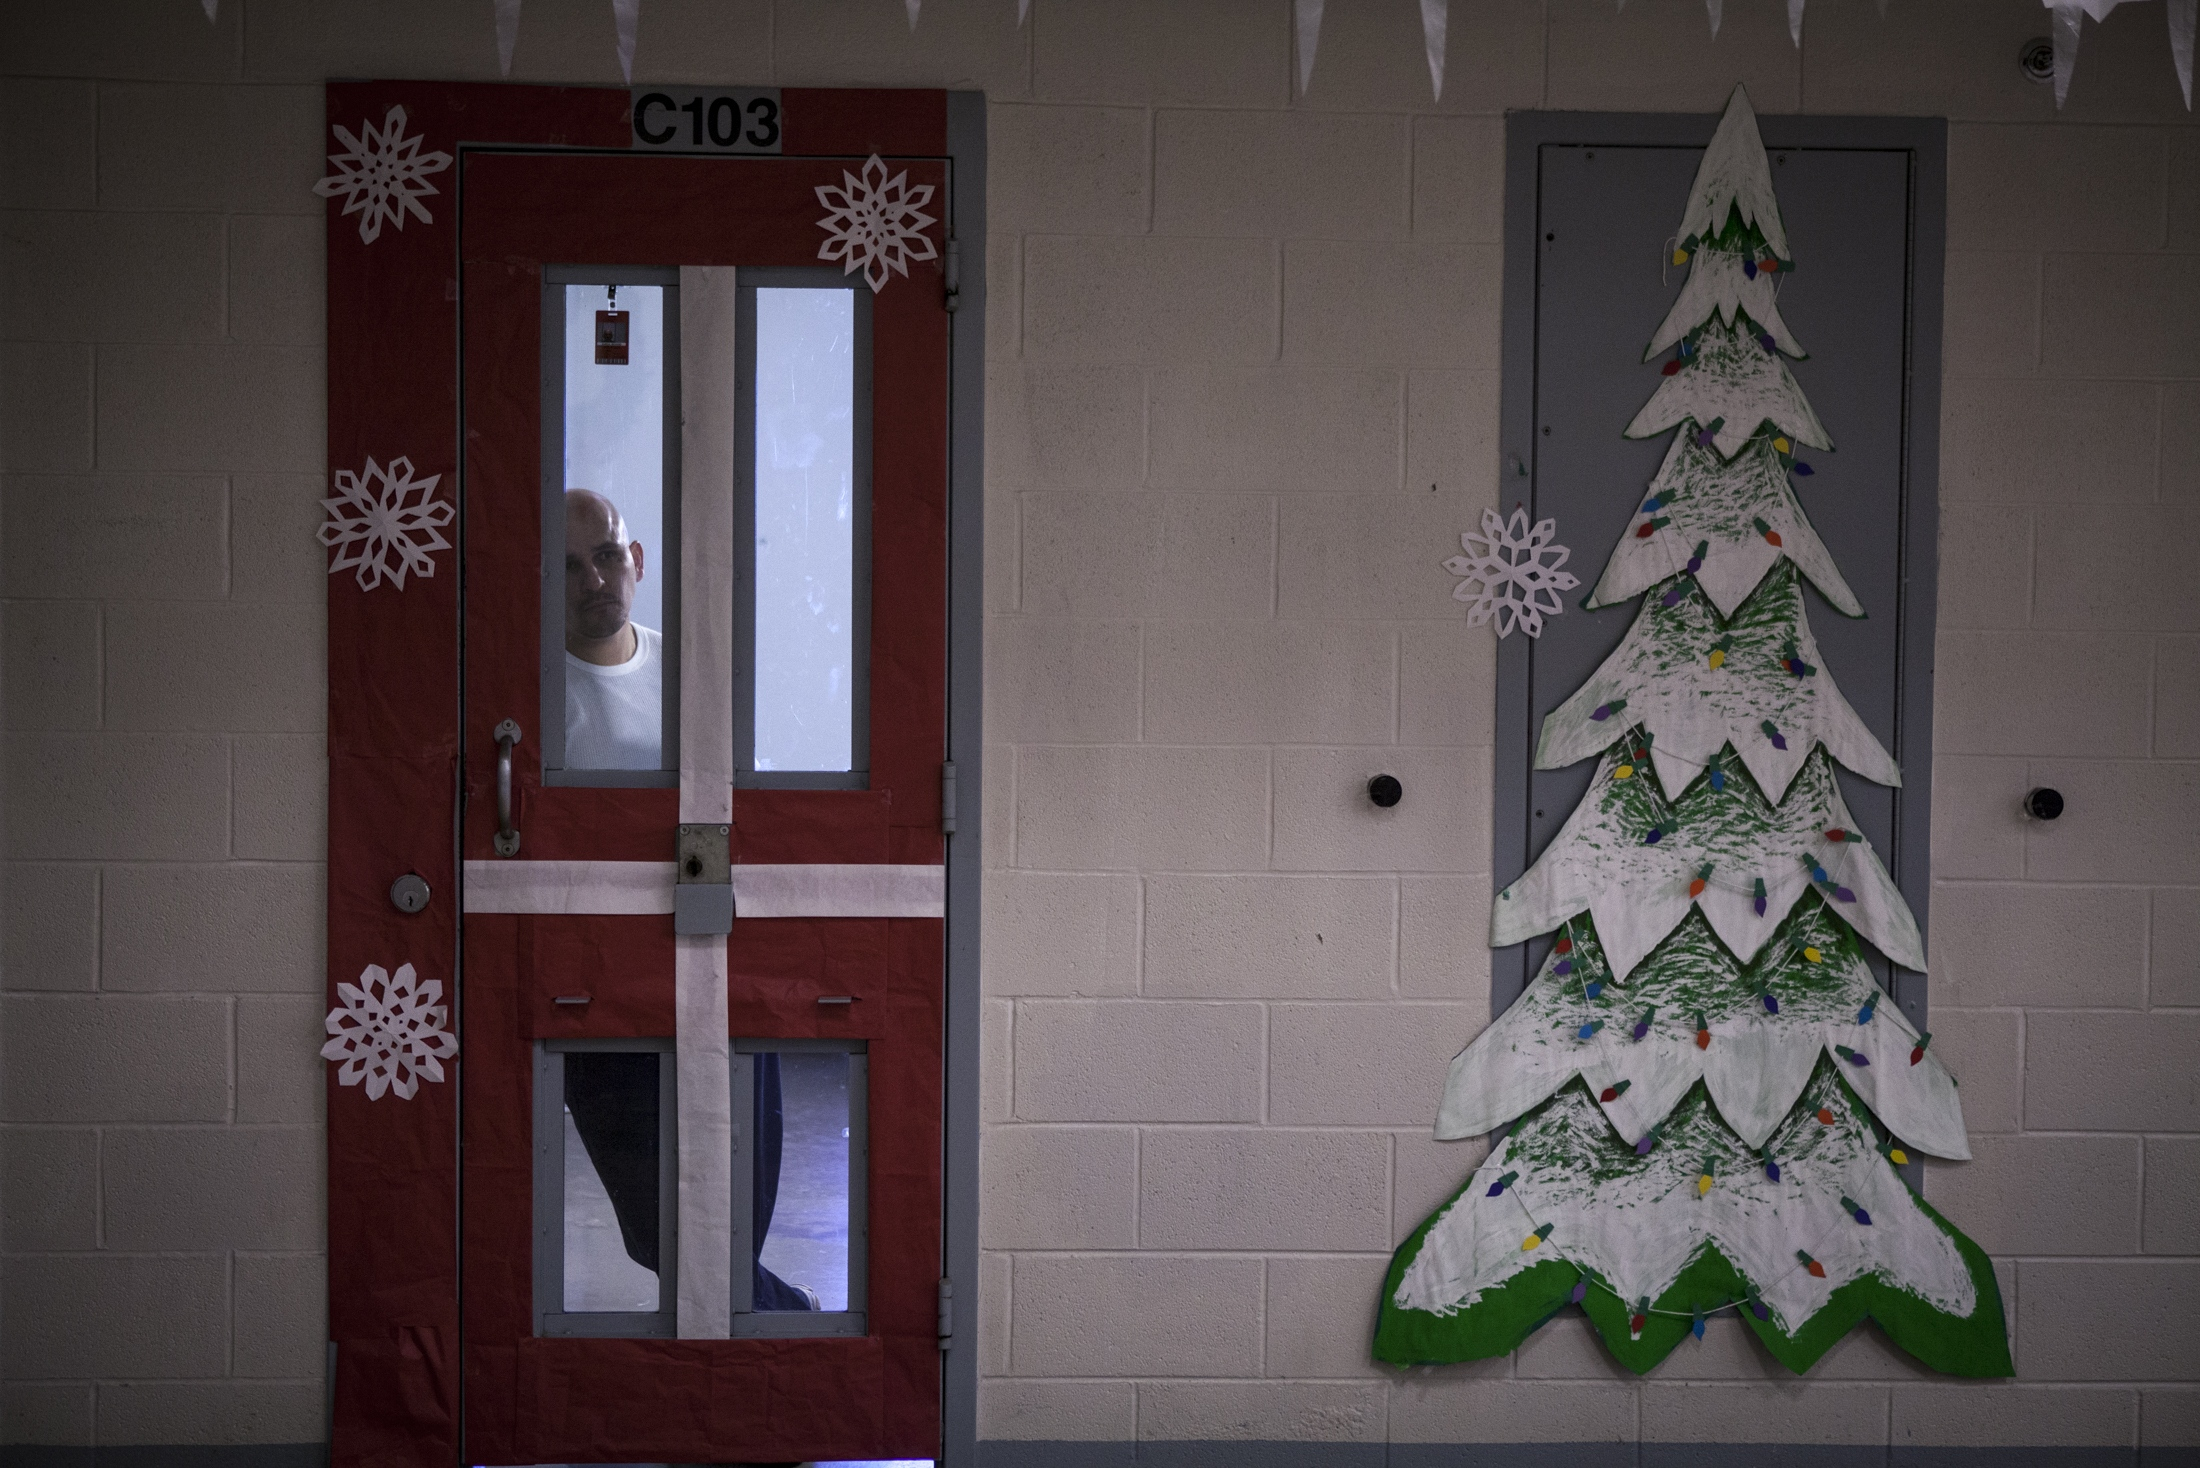 An inmate stares out of his cell while on lockdown as judges evaluate the inmates' pod decorations for an annual Christmas decorating contest at the Guadalupe County Corrections Facility.